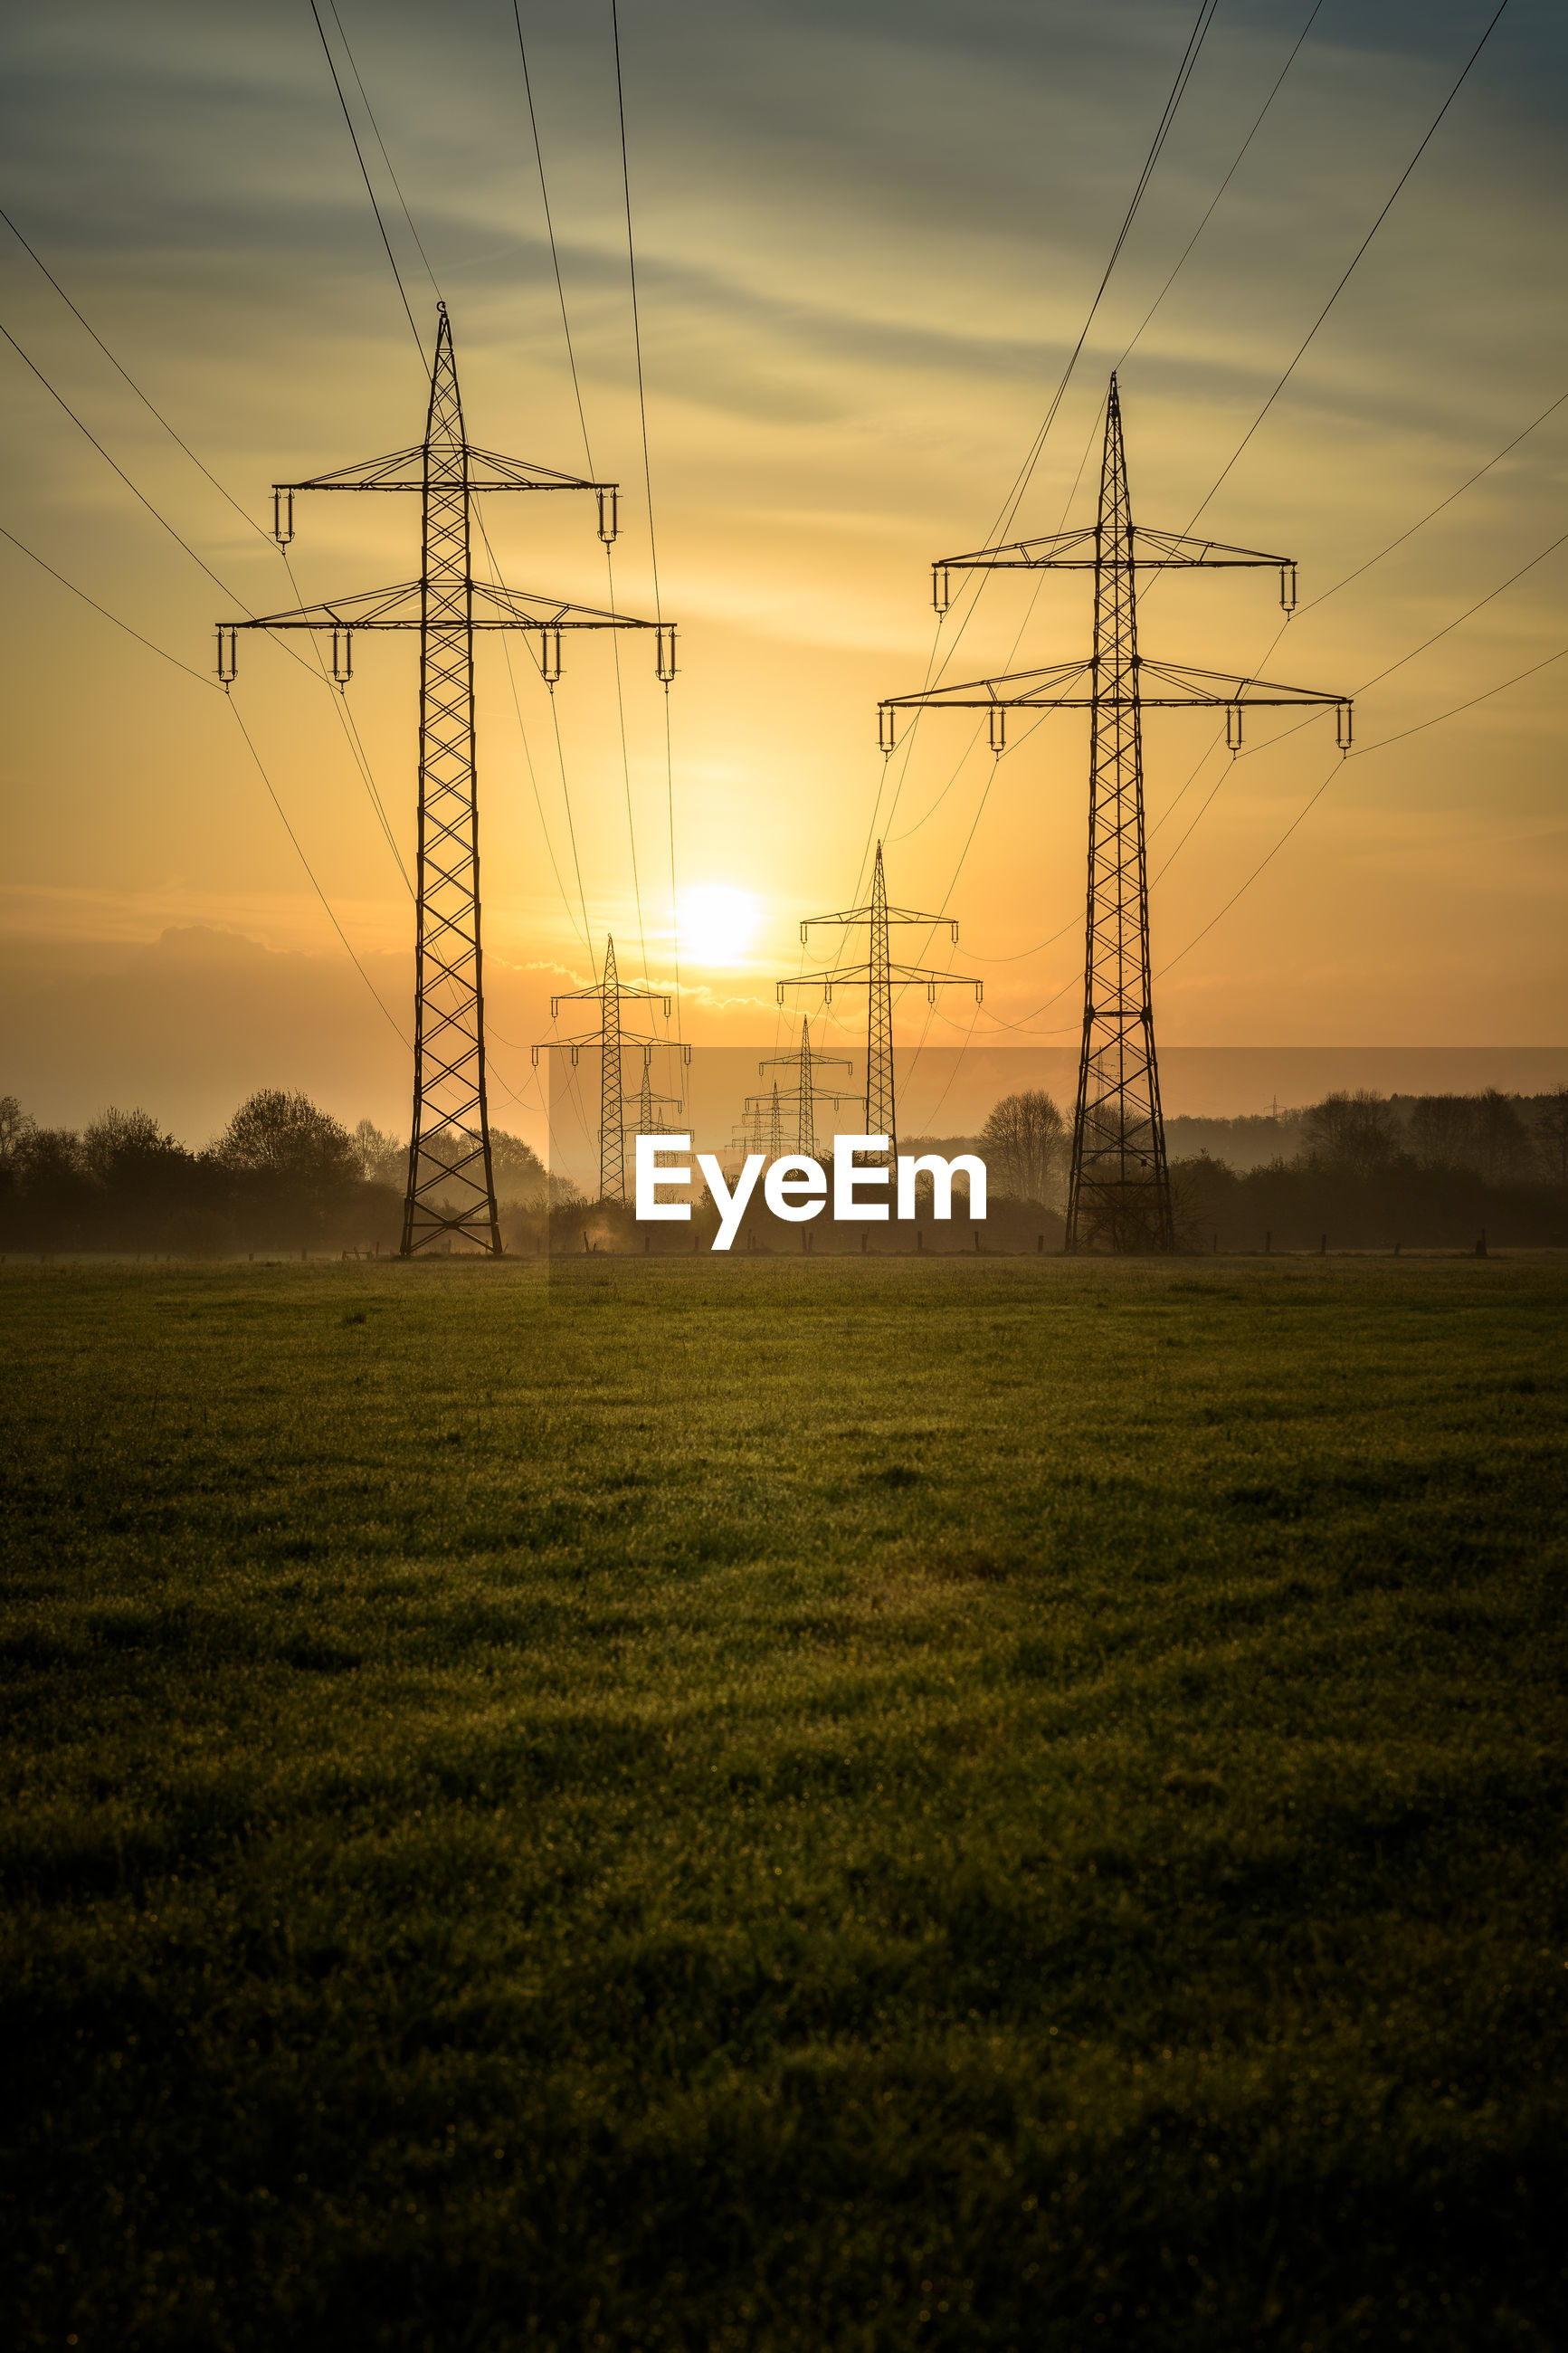 ELECTRICITY PYLONS ON FIELD AGAINST SKY DURING SUNSET